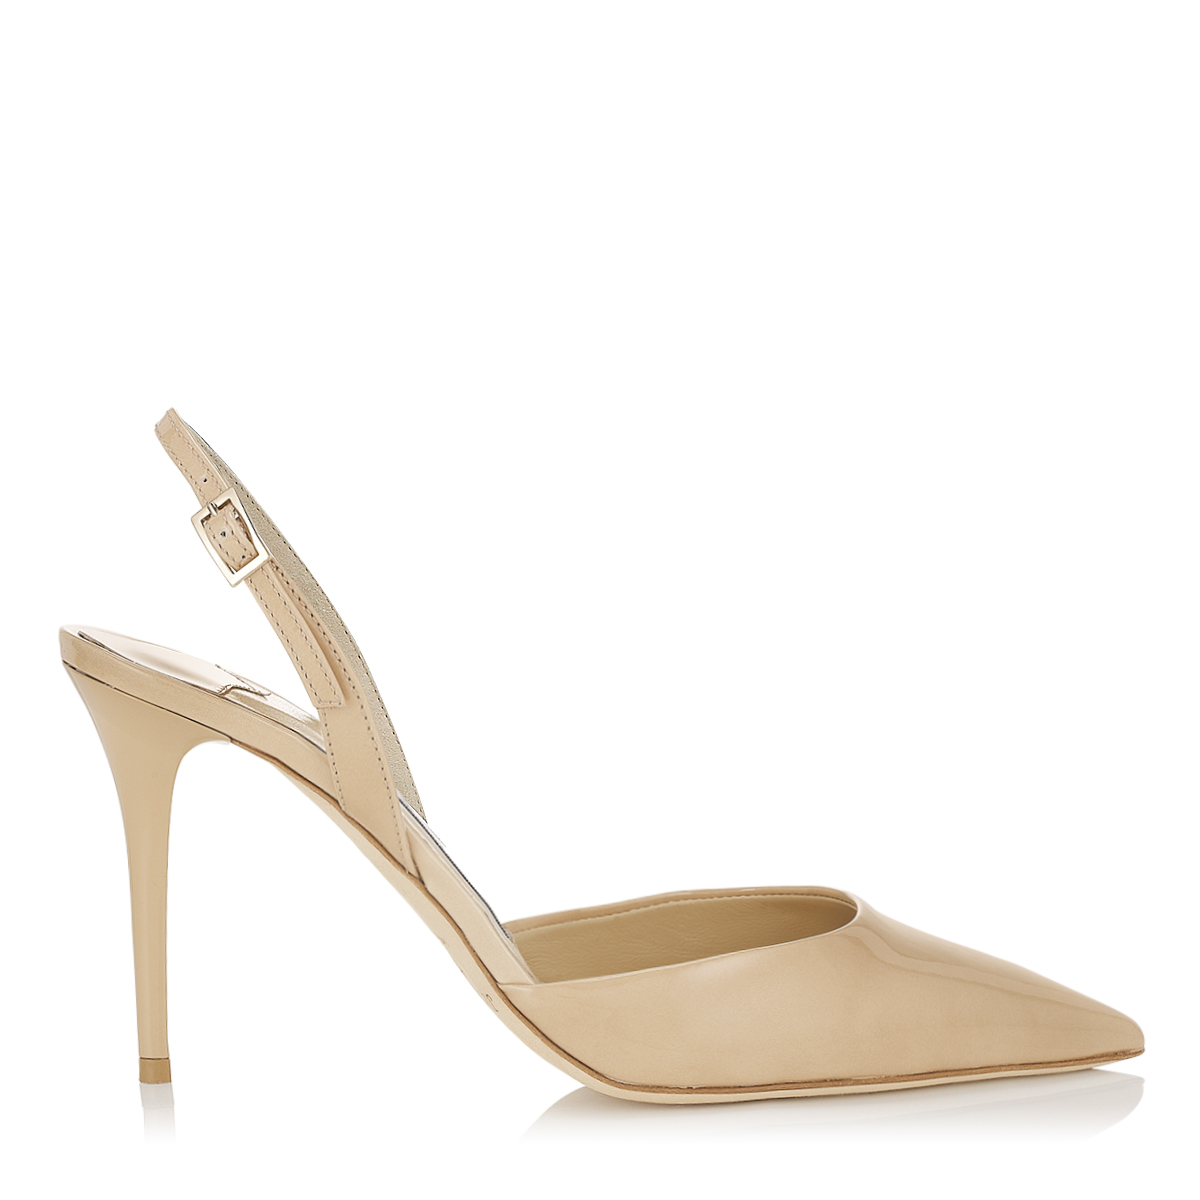 TILLY Nude Patent Leather Sling Back Pumps